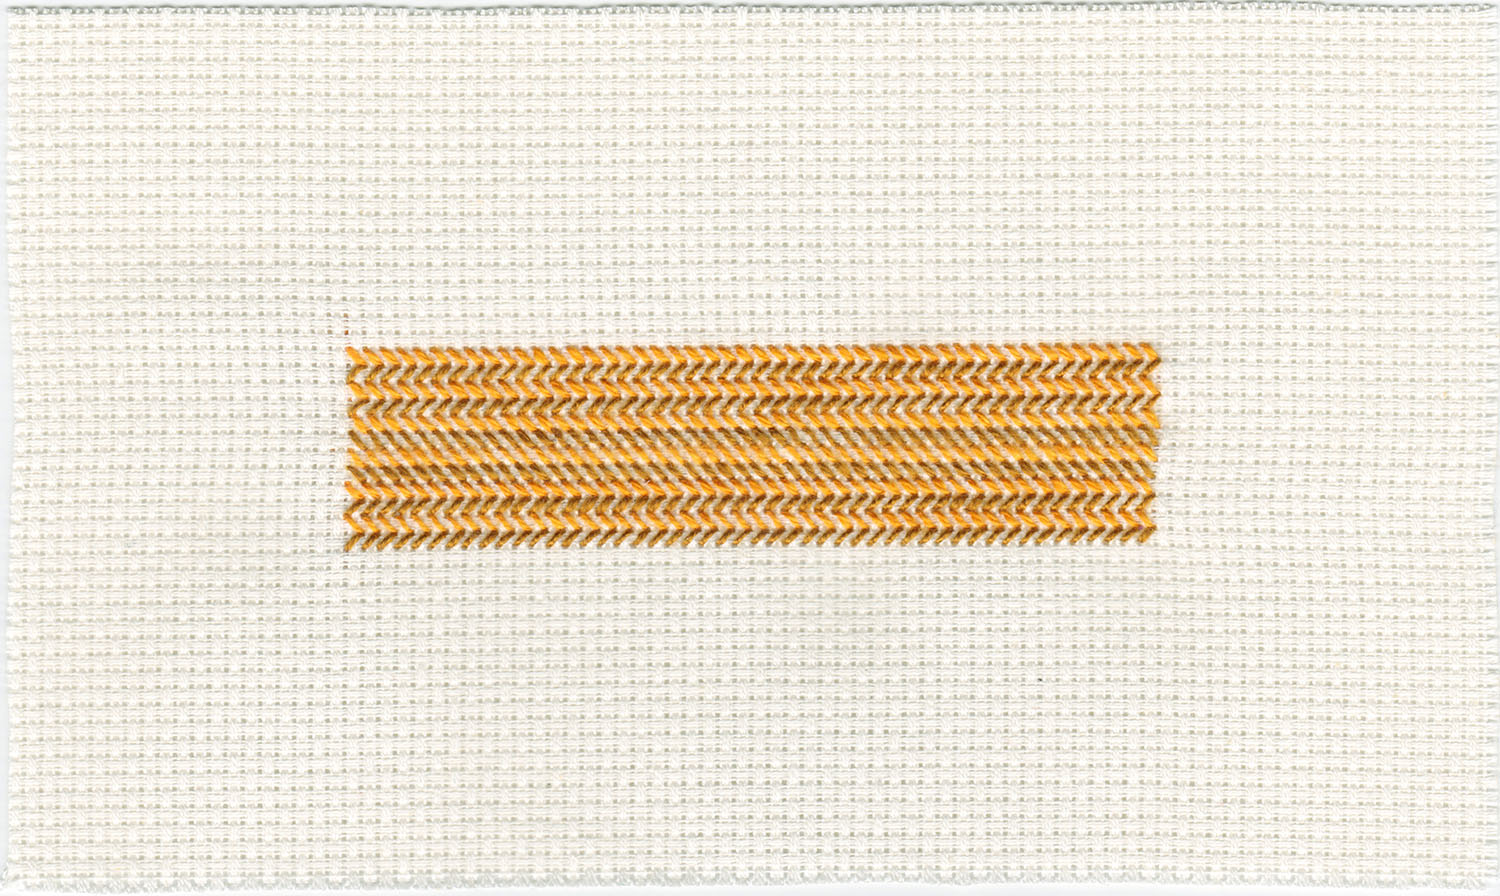 Colour Study in 576 Diagonal Stitches_1A_web.jpg